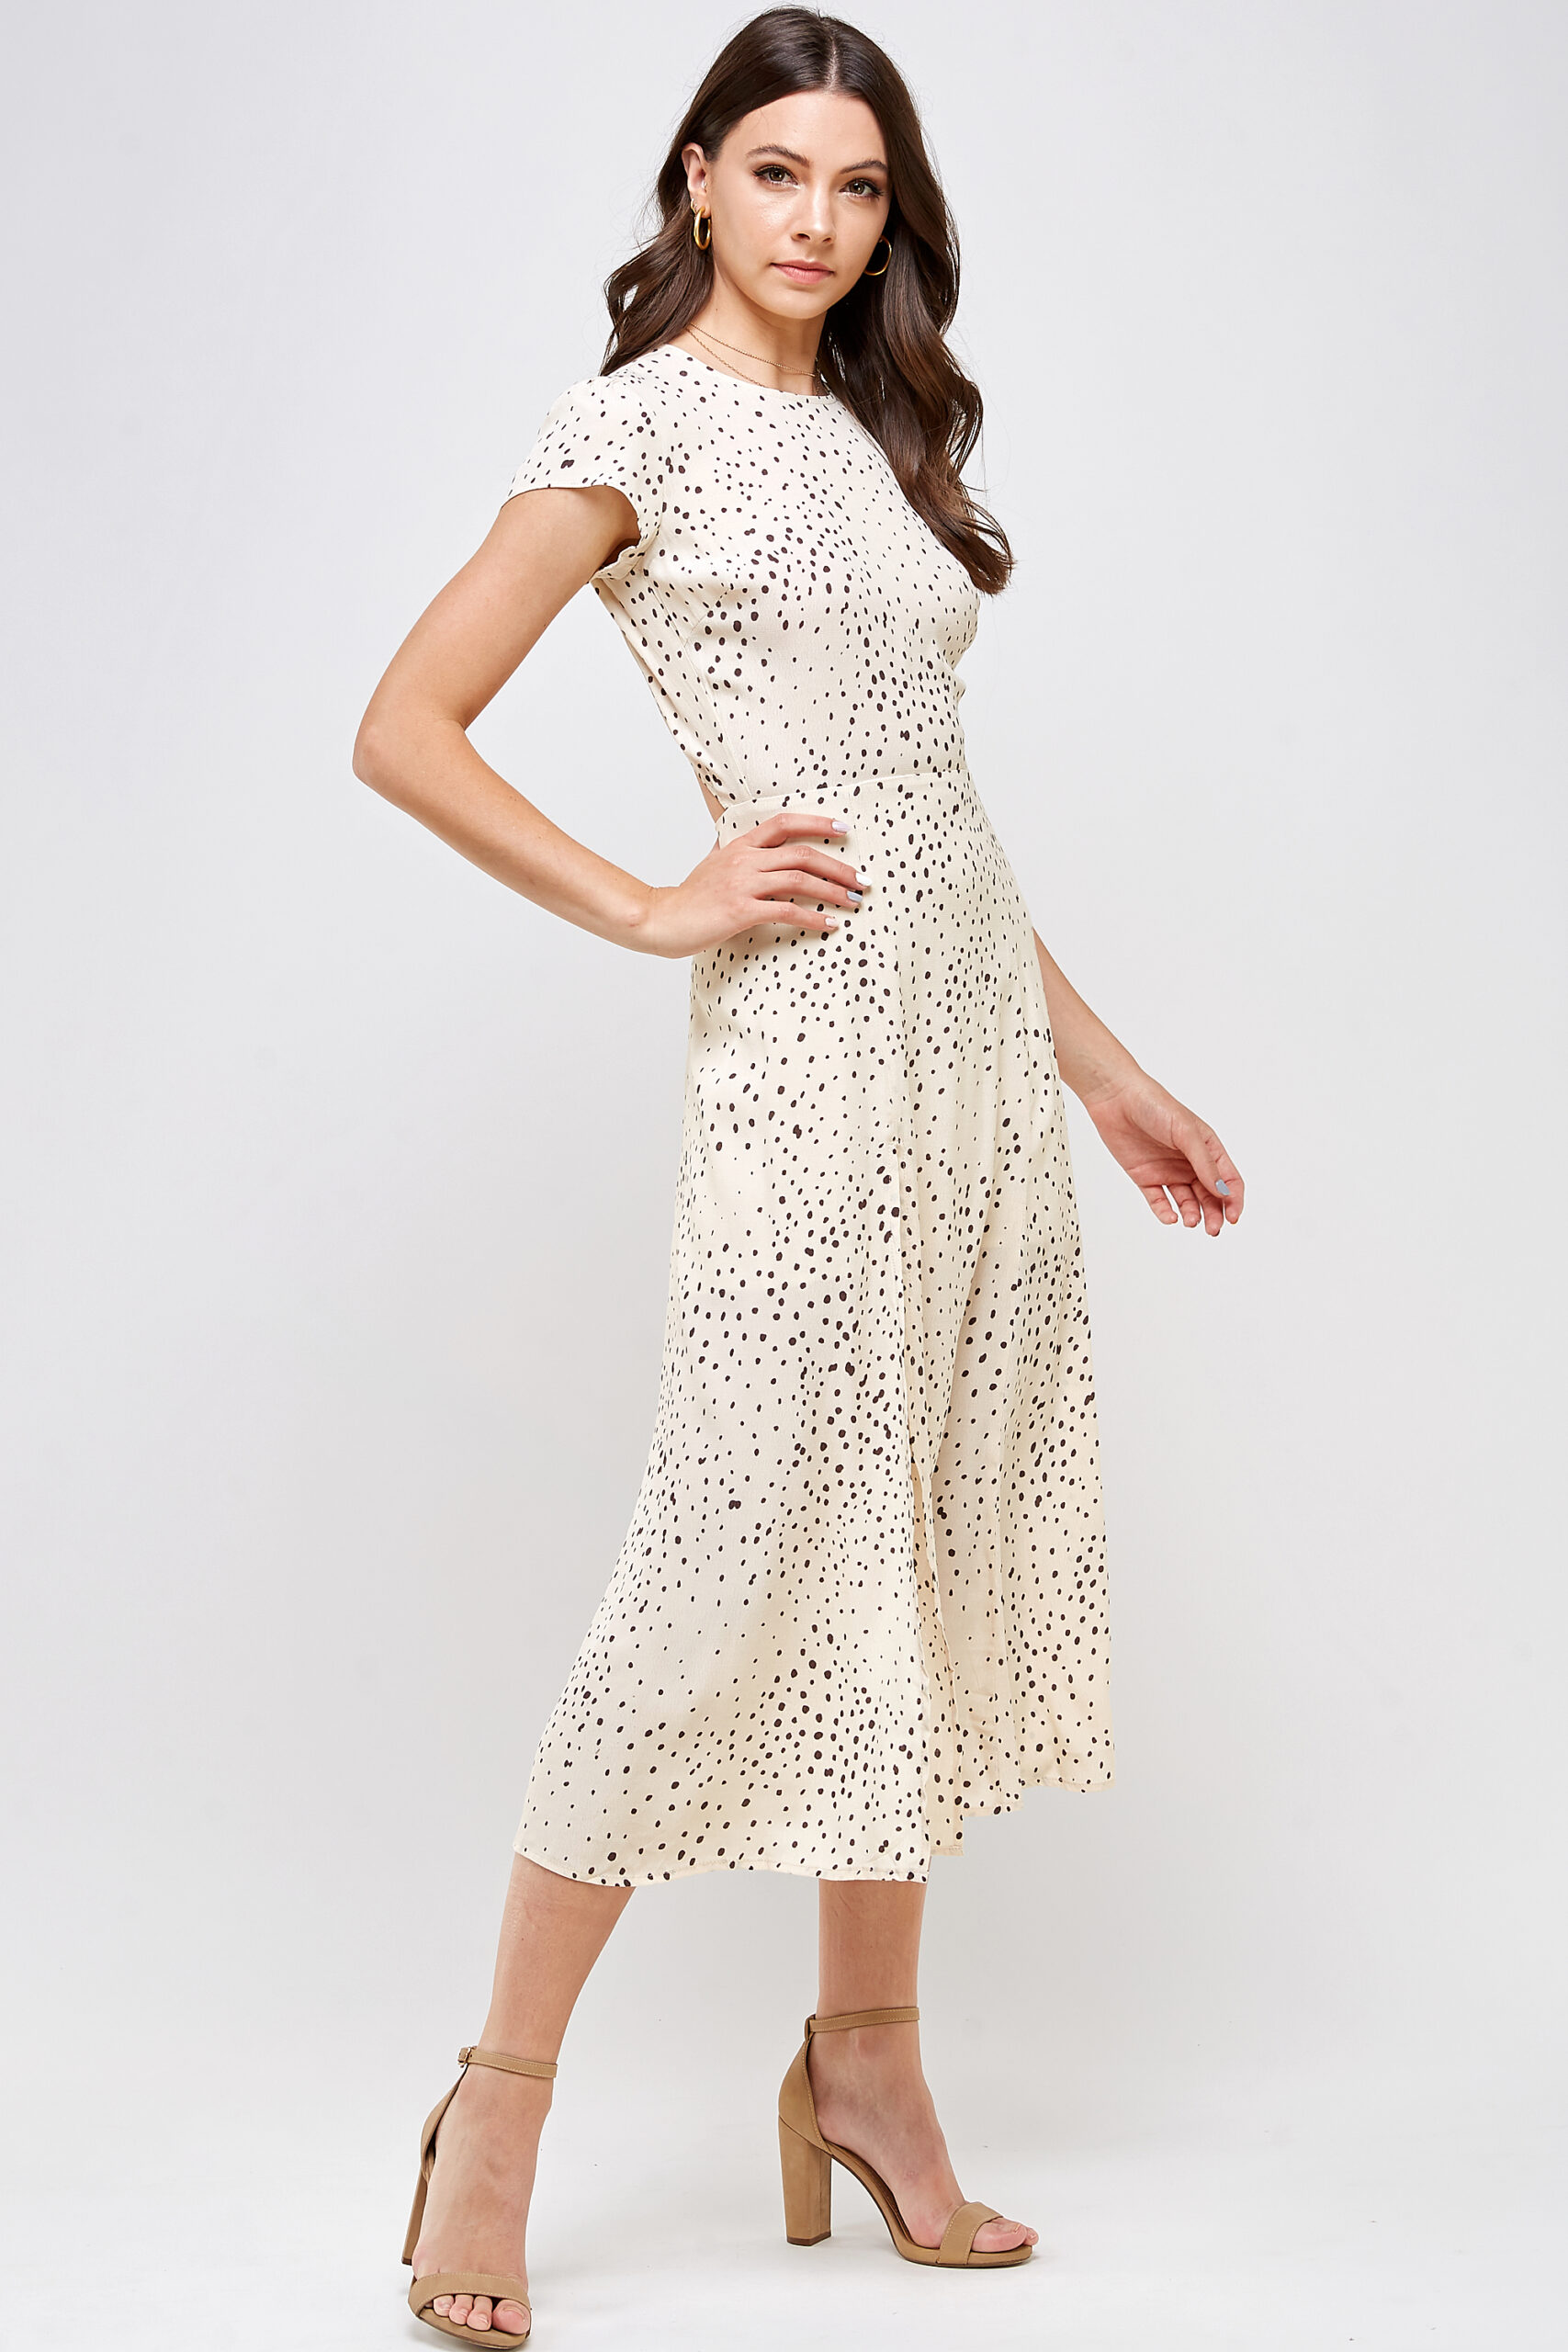 100% Rayon Open Back High Leg Slit Cap Sleeves 3/4 Front View